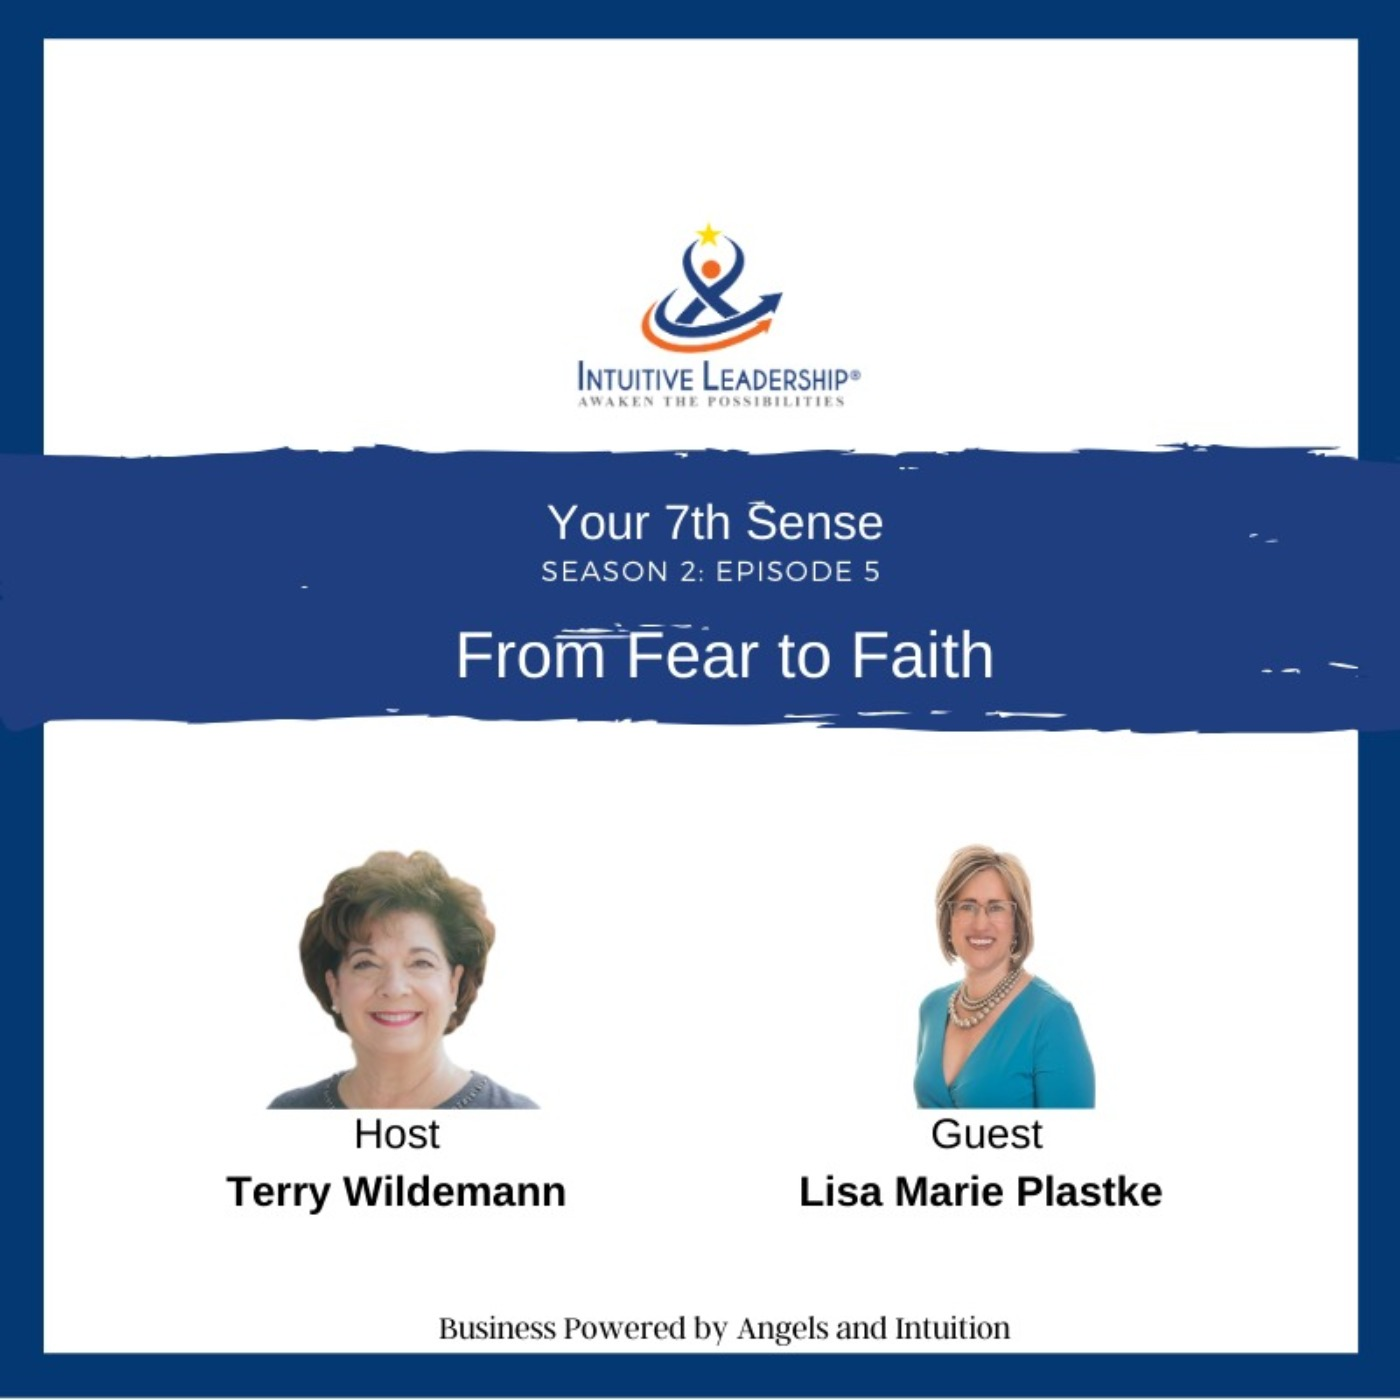 Your 7th Sense: From Fear to Faith